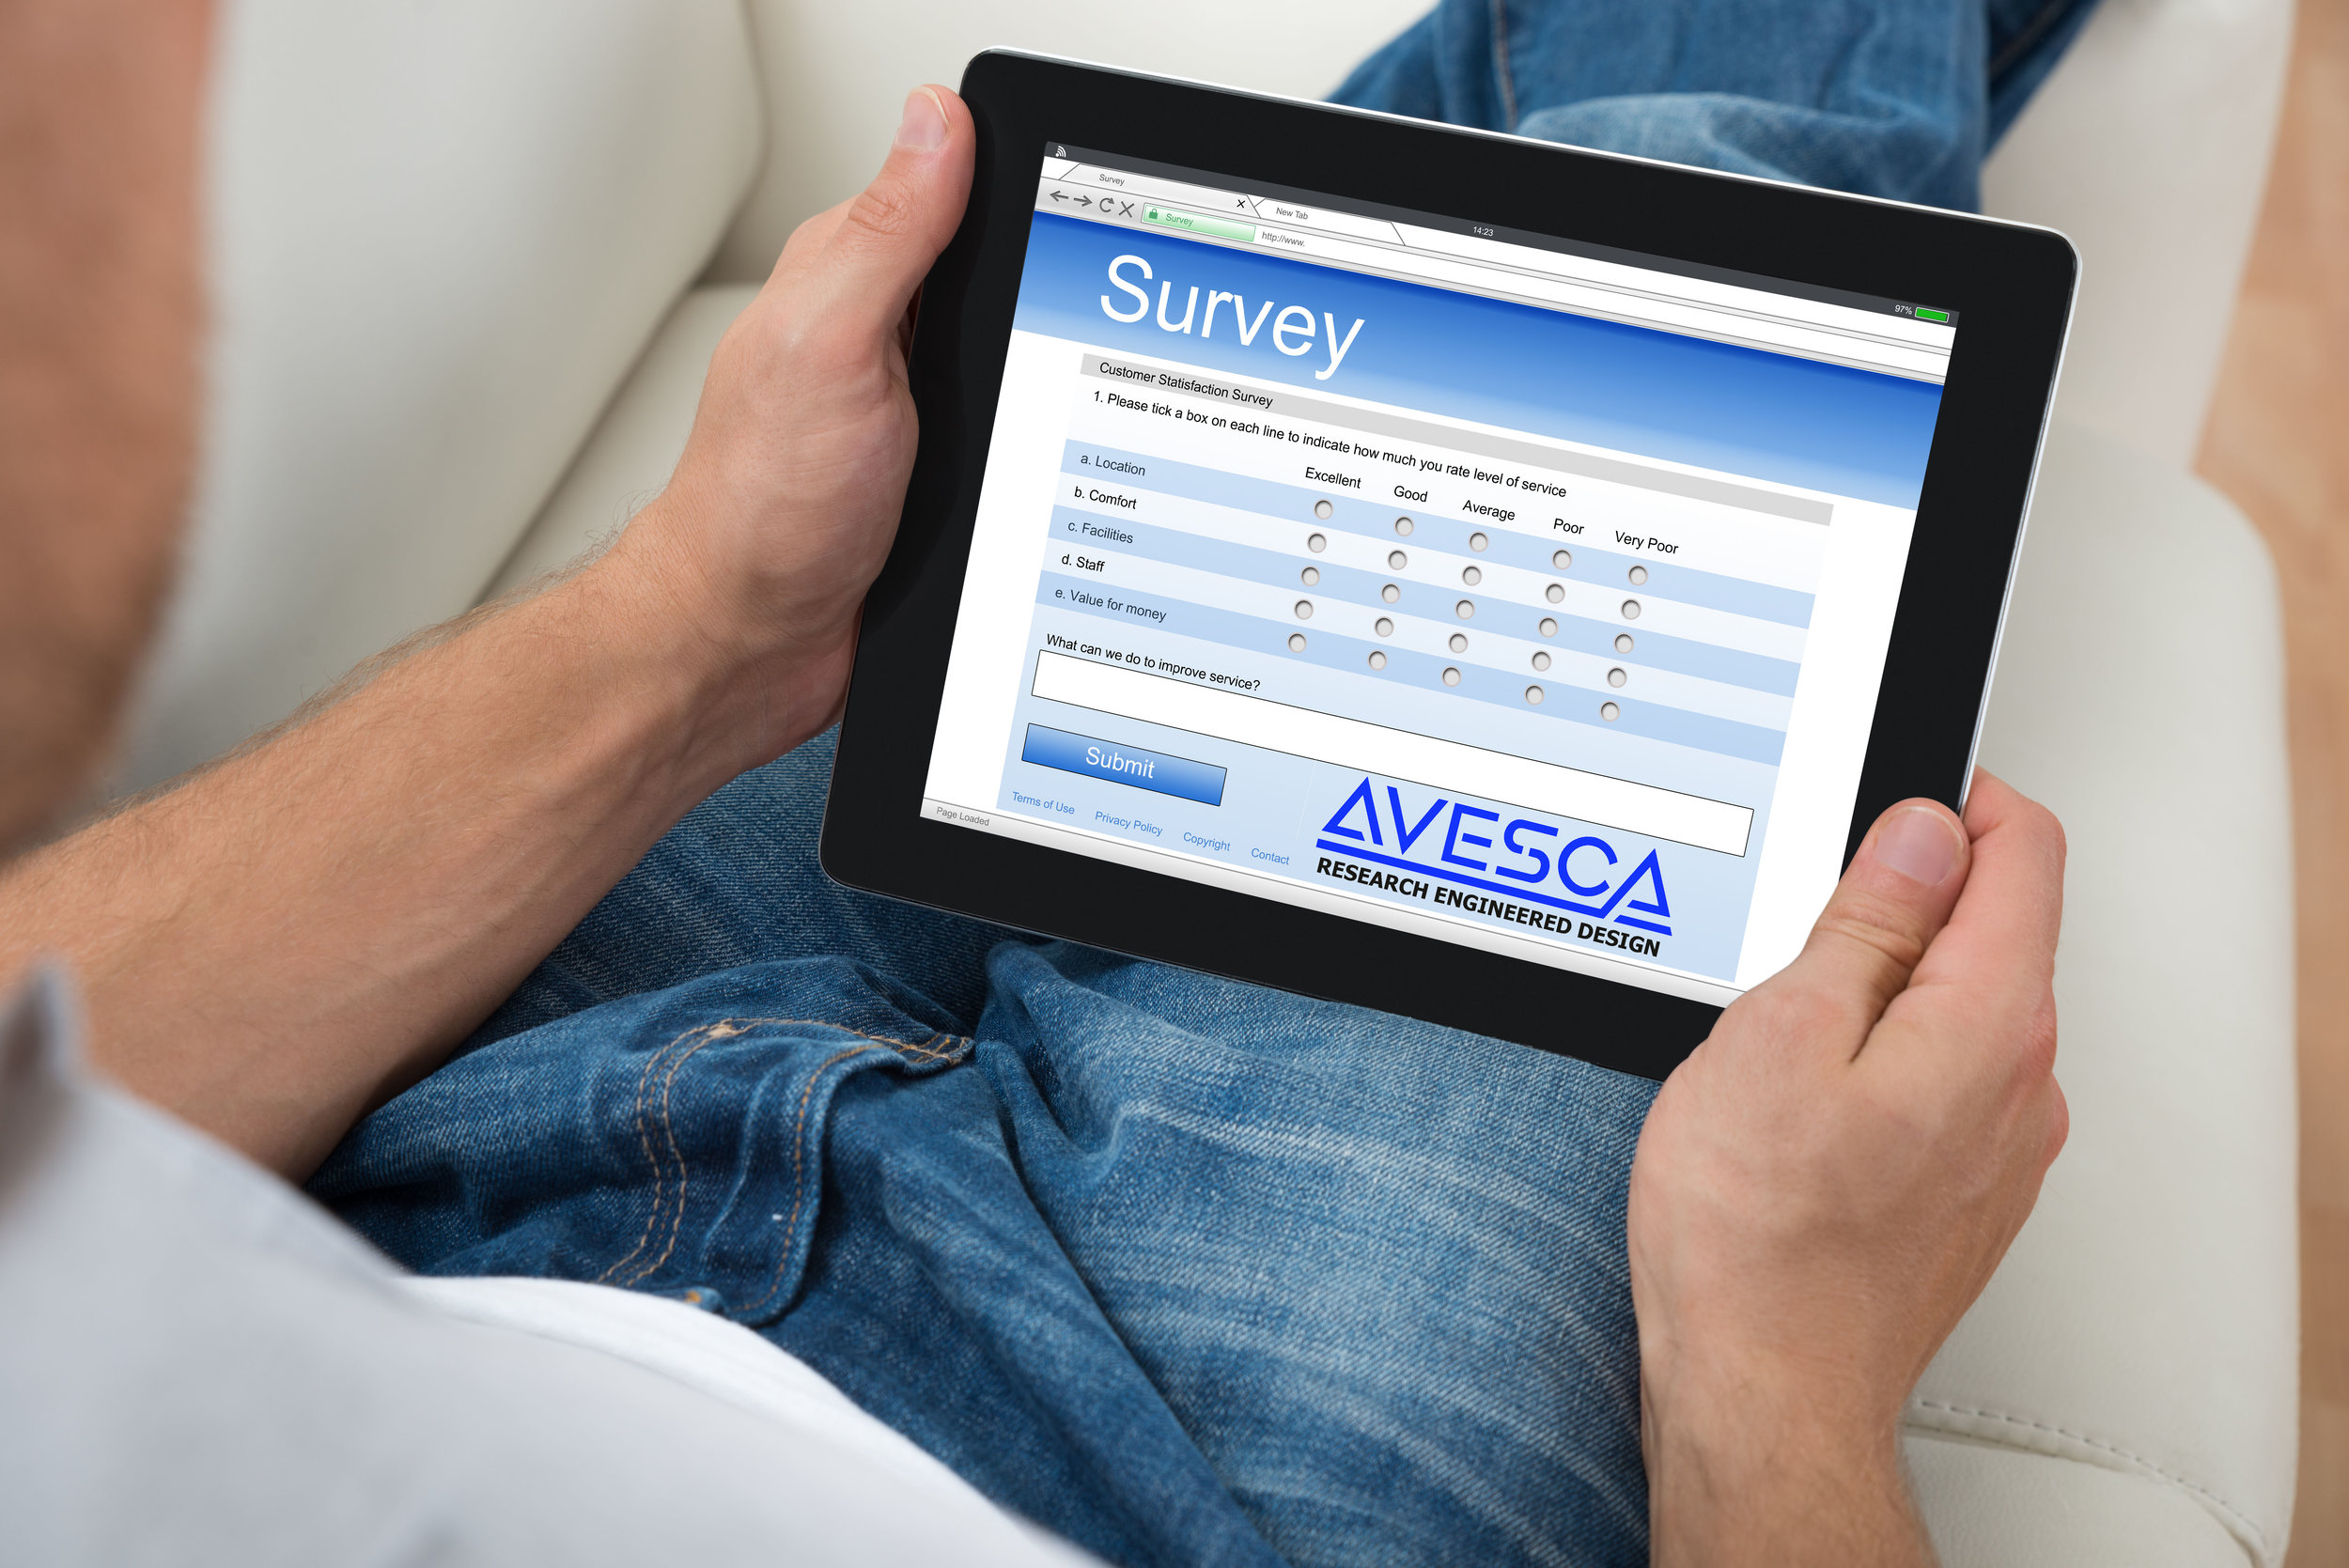 What We Do - Avesca performs Product Lifecycle Management.We identify information about your:· Product· Customers· Processesand help to make your designs user-friendly. From concept to production to disposal, we make sure you are fully addressing the lifecycle of your offering.Our Capabilities »